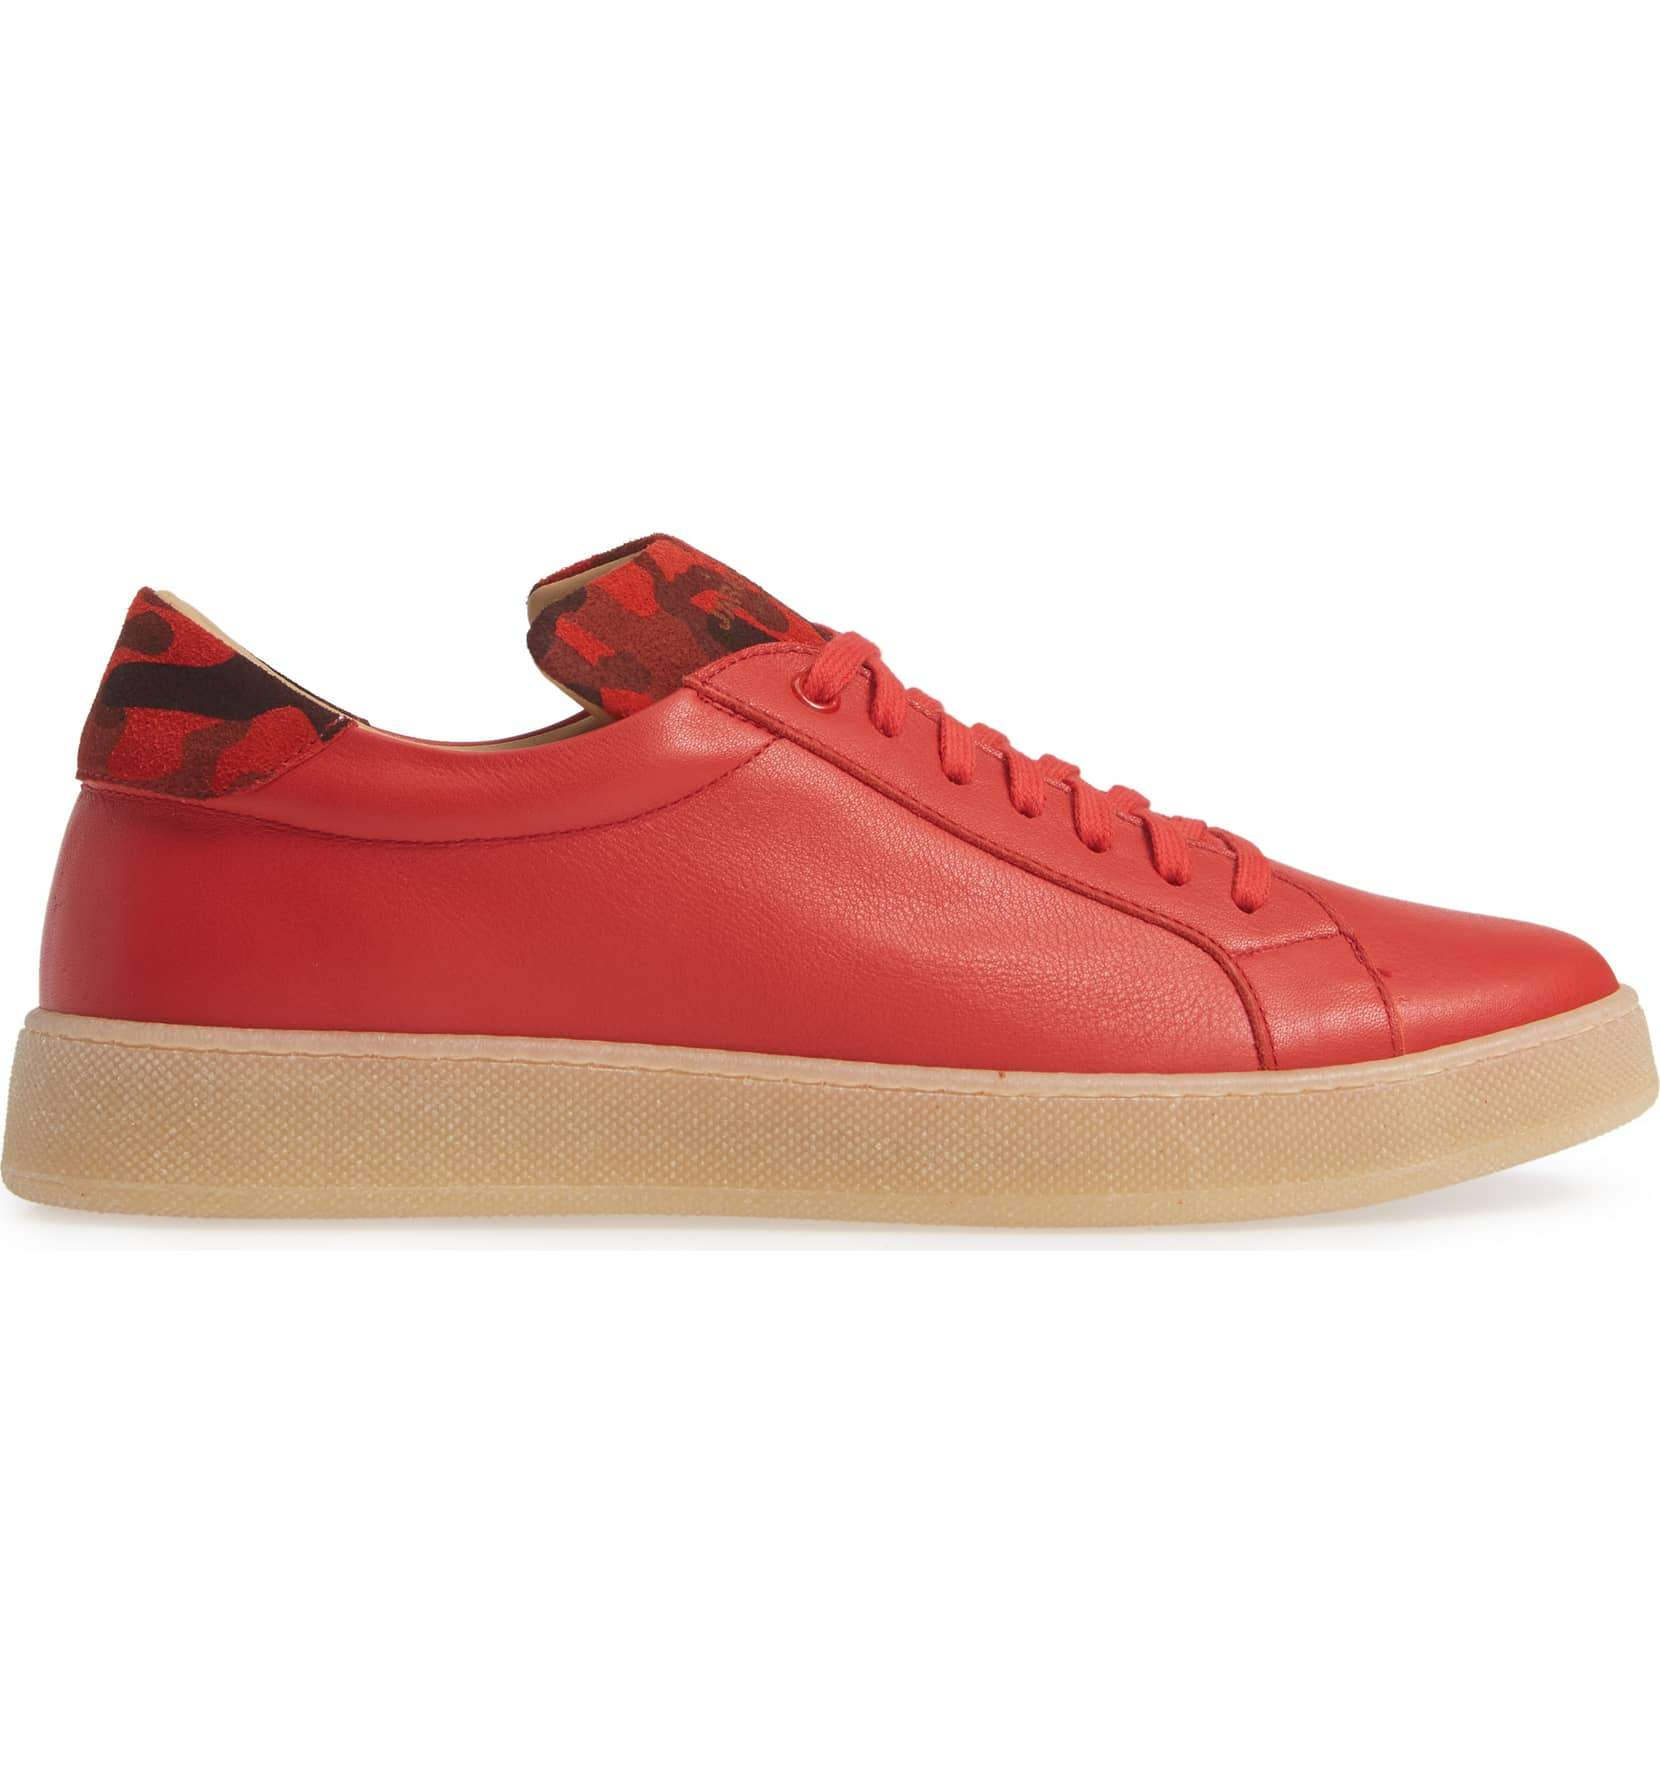 Red Sneakers for Men - side 2828-RDC - Jared Lang